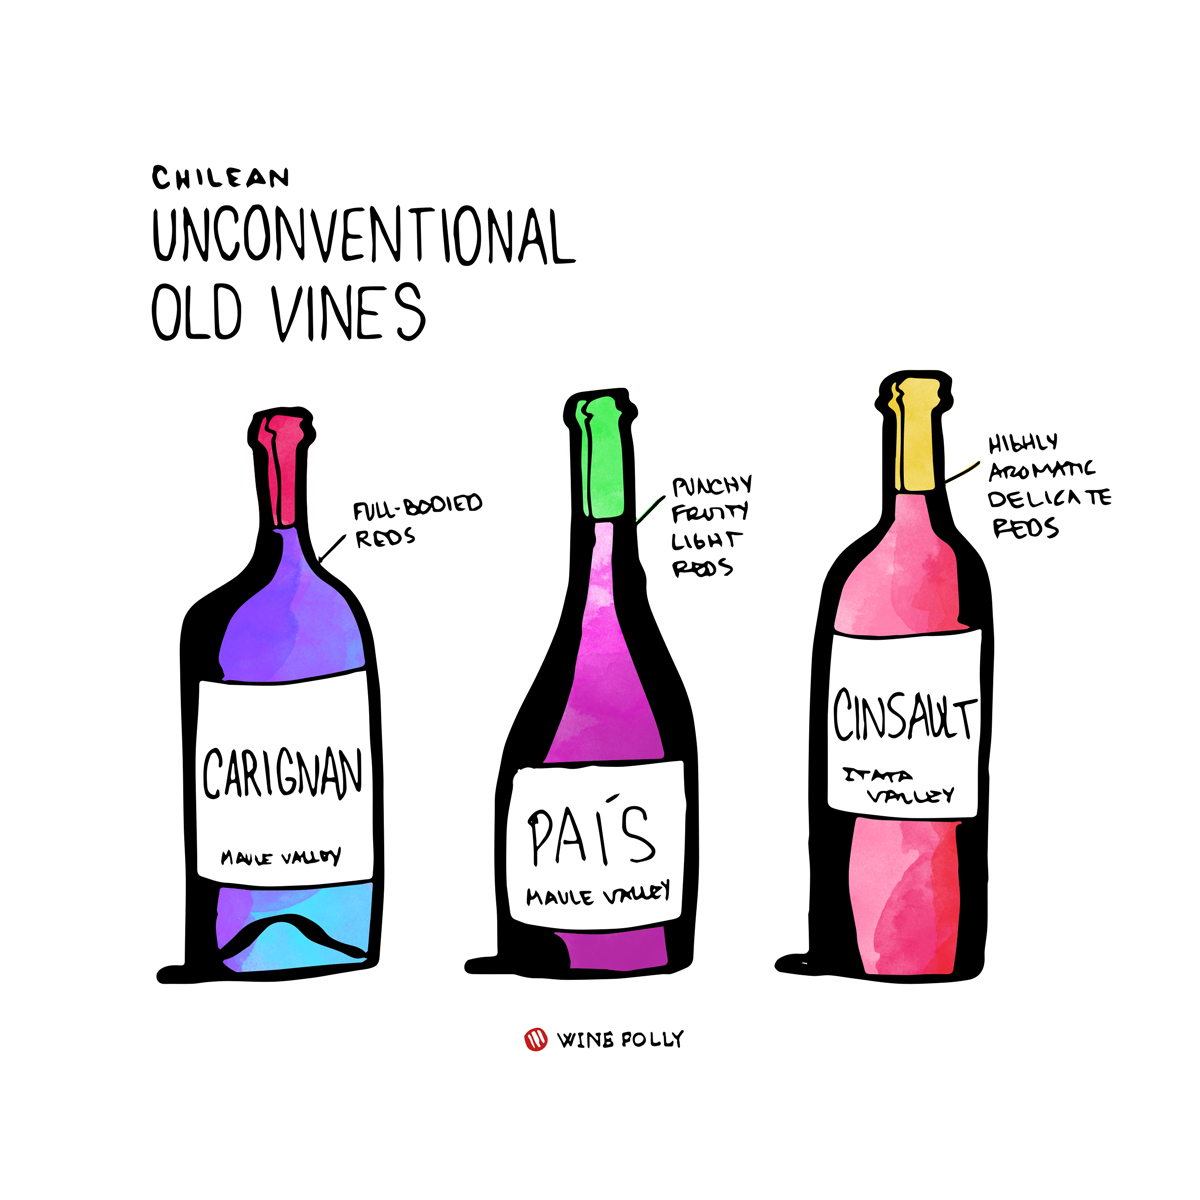 pais-carginan-cinsault-chile-wine-folly